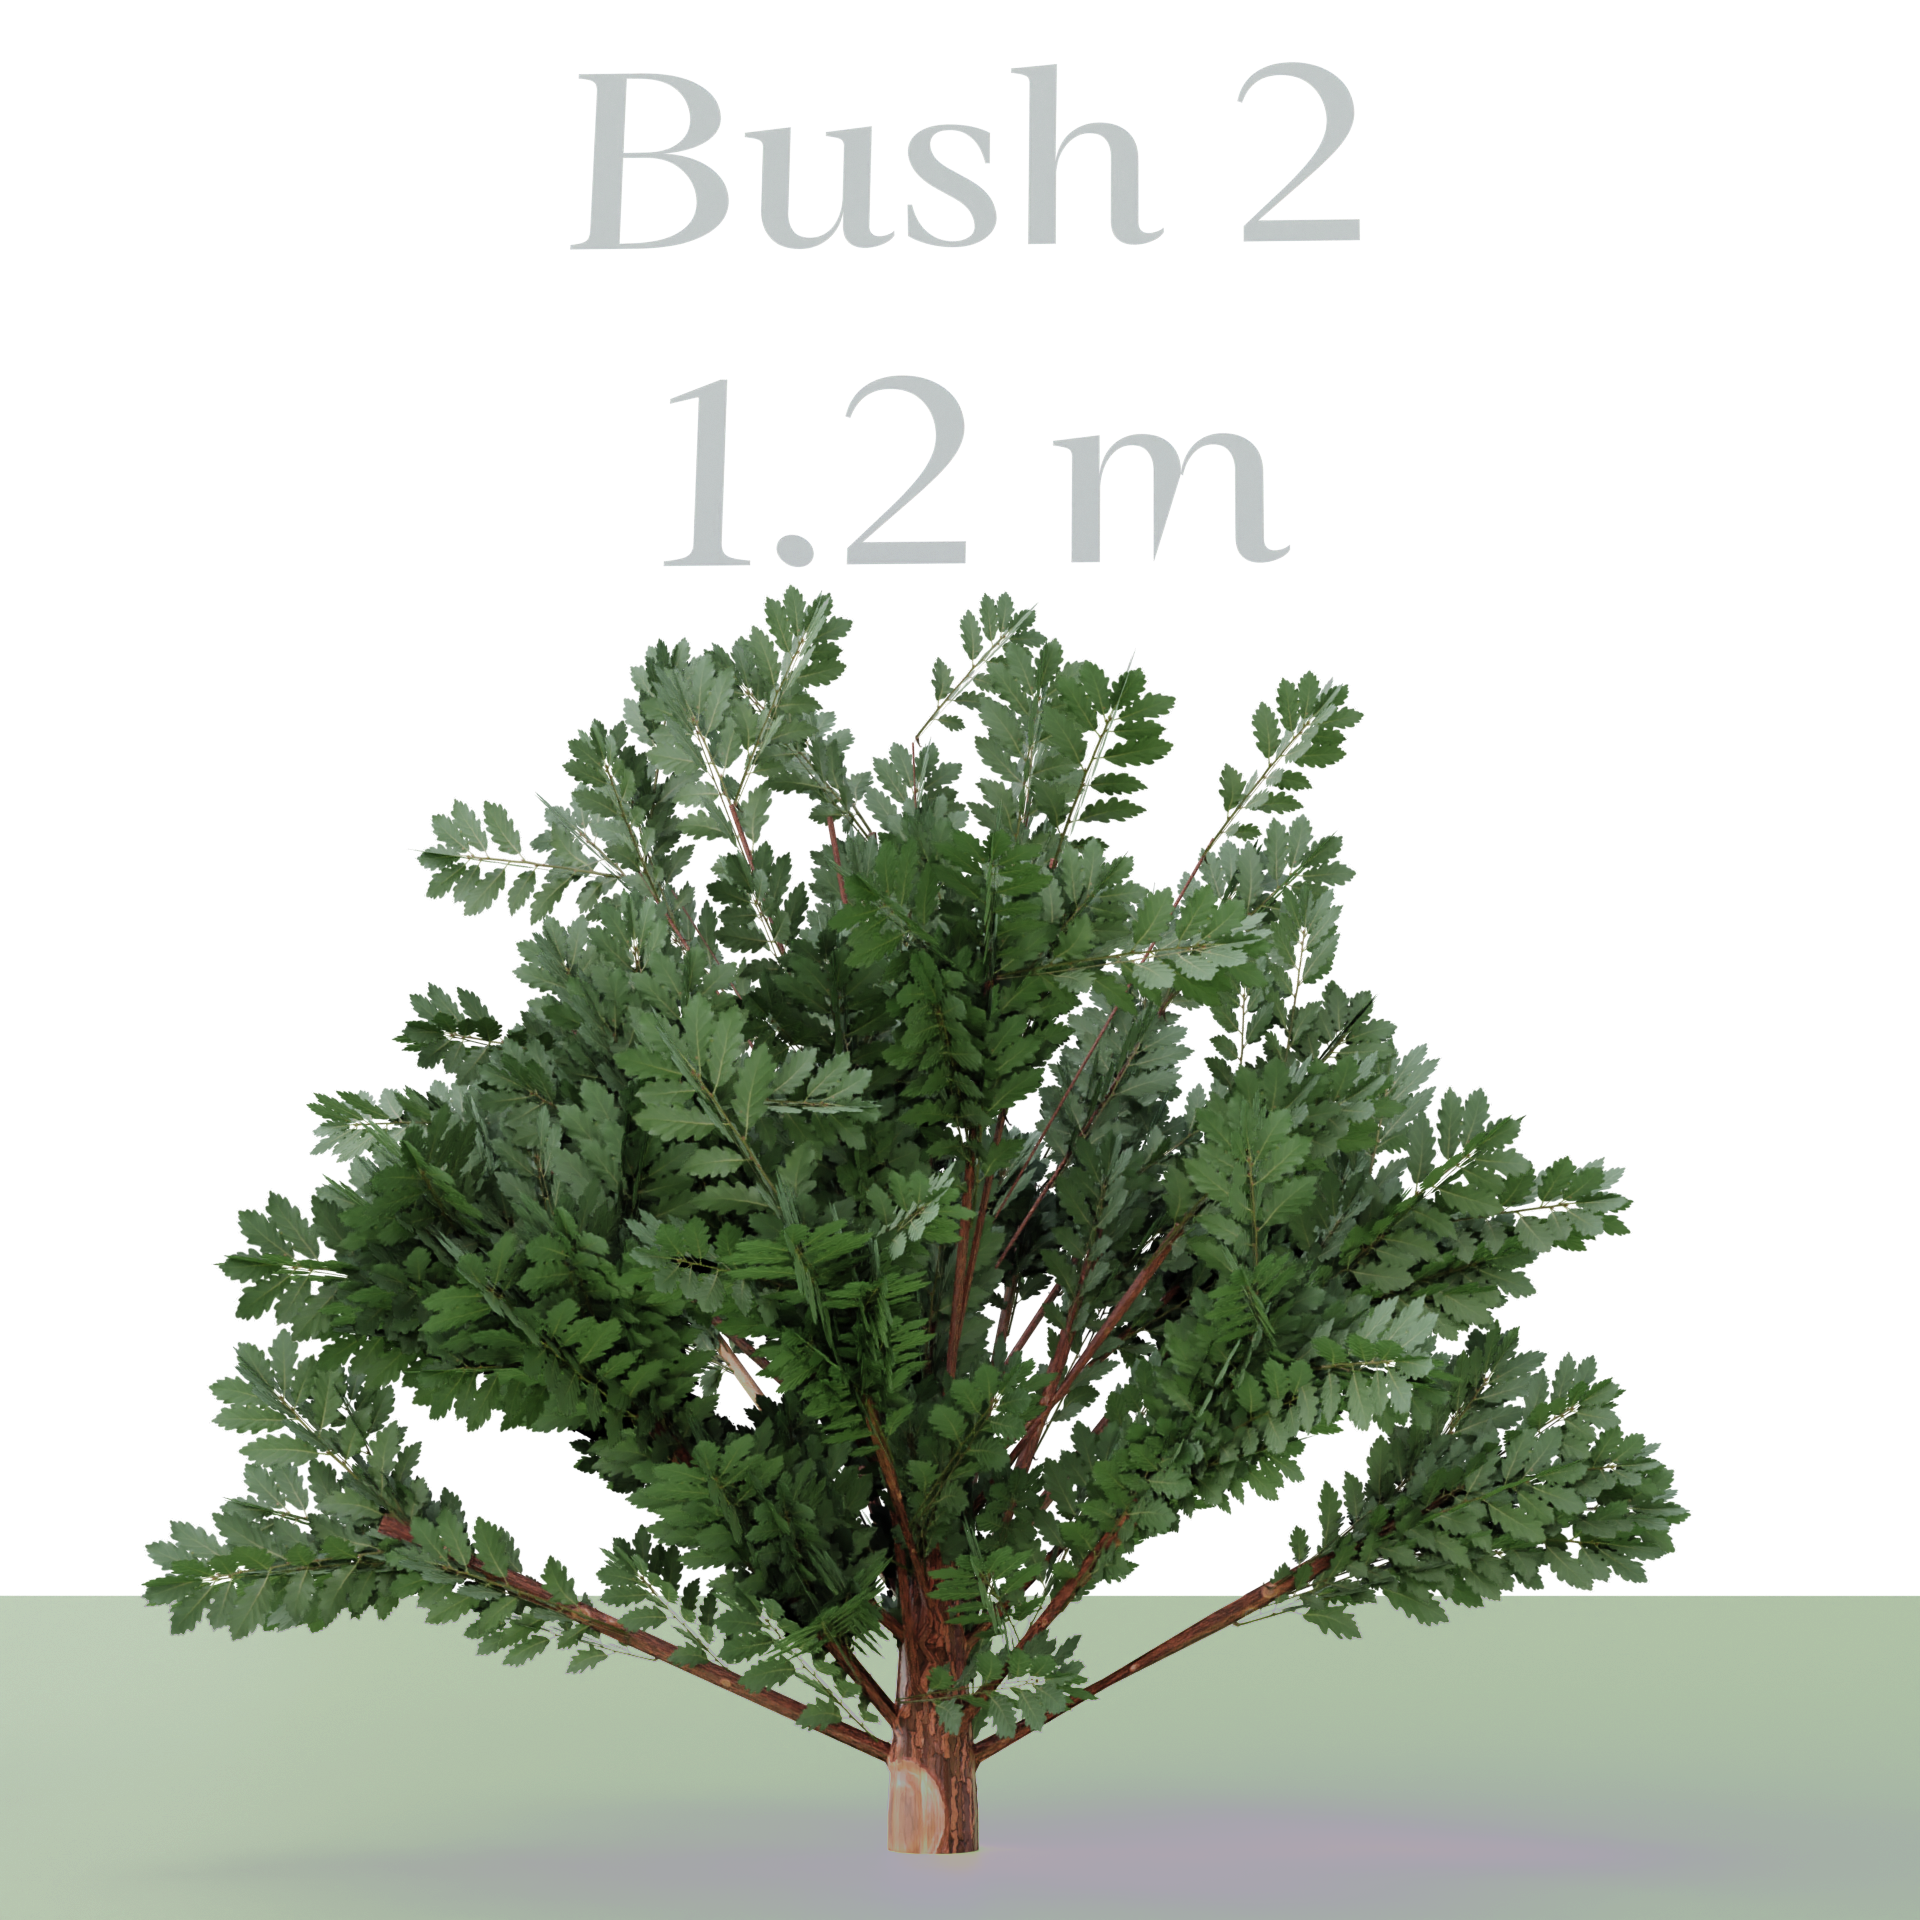 Three Bush's preview image 4